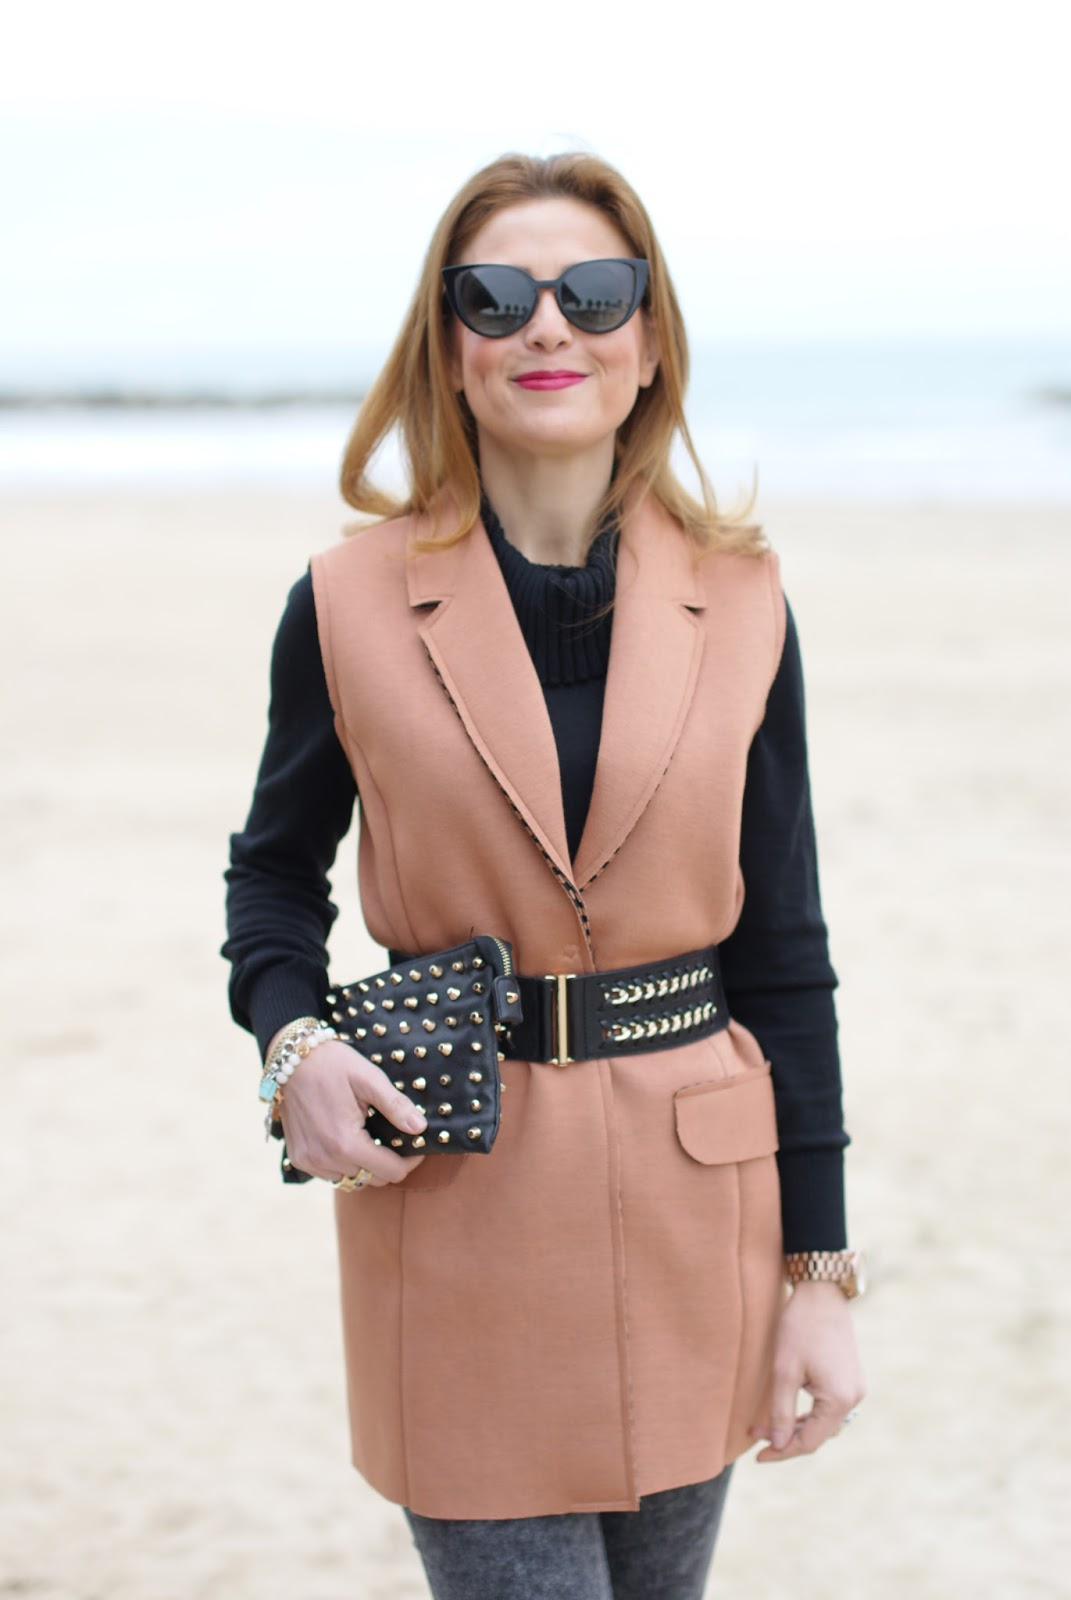 How to spice up a simple outfit with a camel sleeveless jacket and black turtleneck  on Fashion and Cookies fashion blog, fashion blogger style